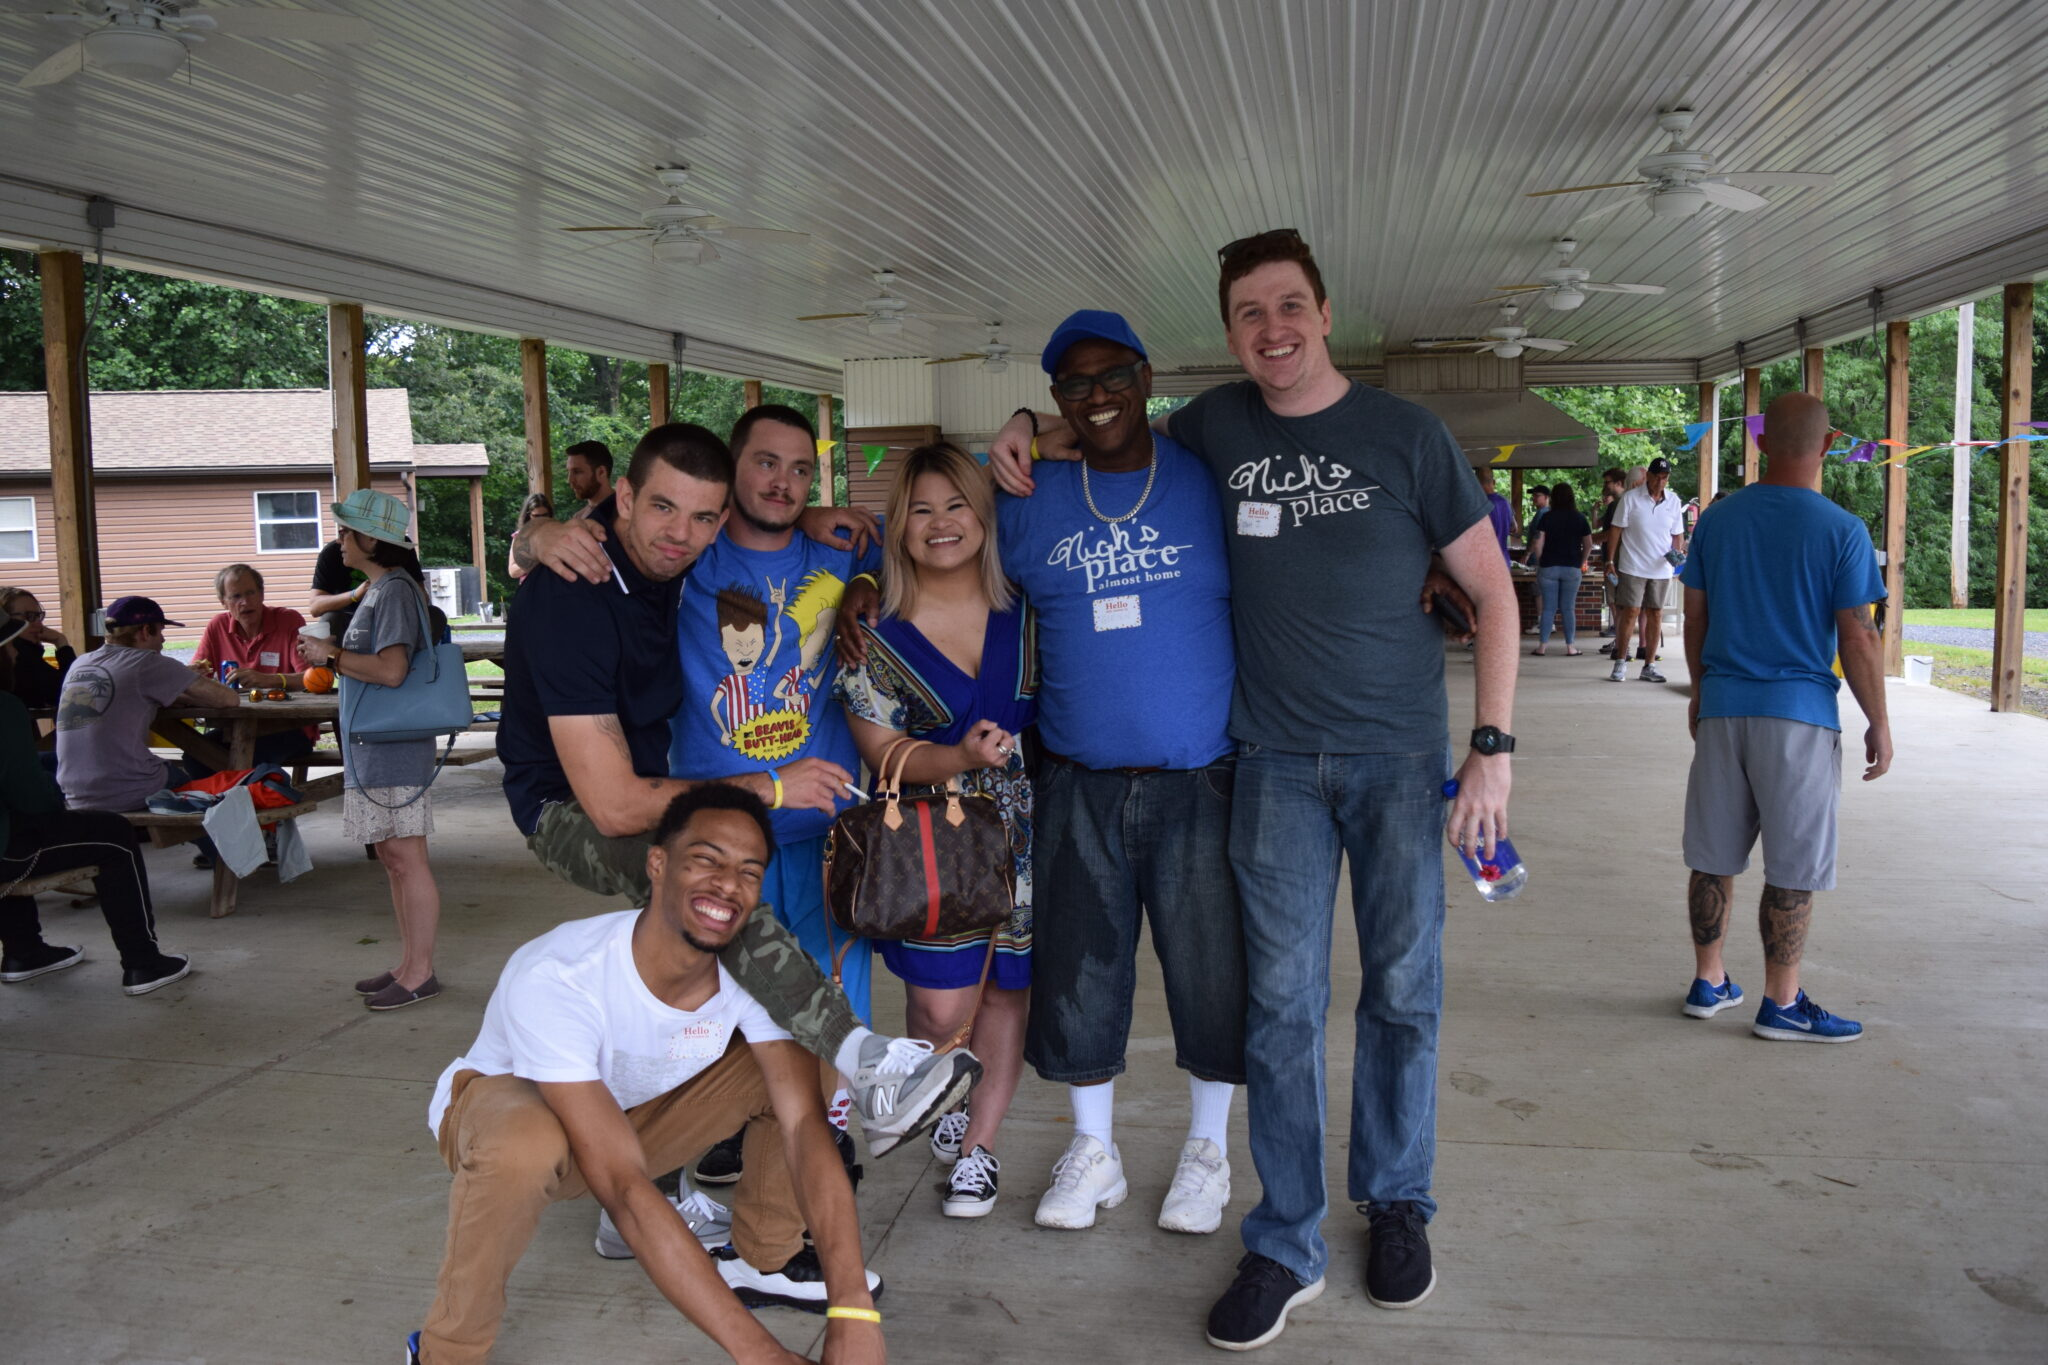 A group of five men and one woman stand together smiling and posing for a picture at an outdoor party under a pavilion